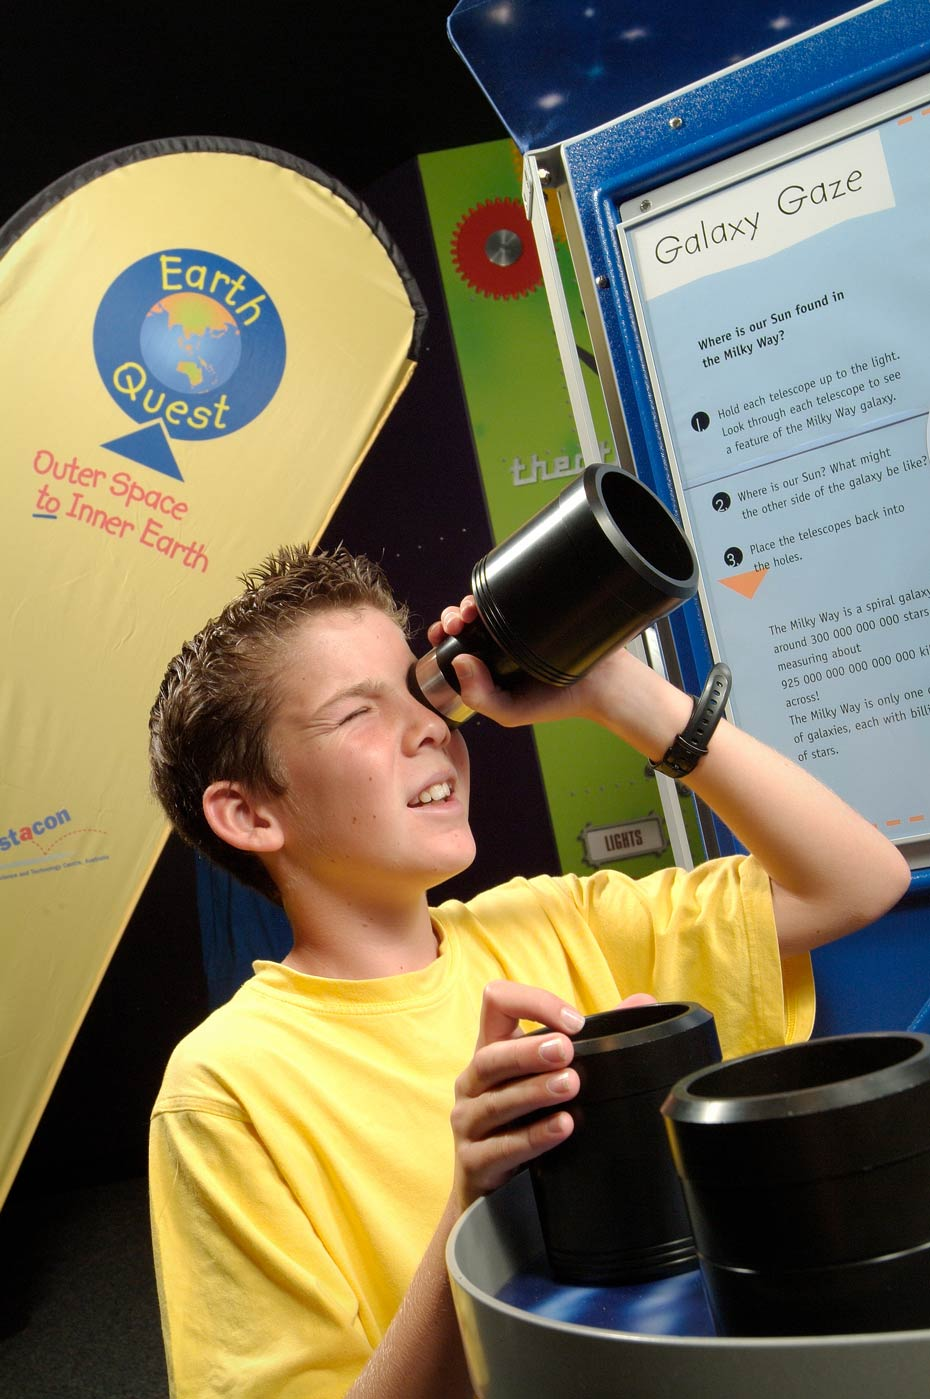 A boy in a yellow t-shirt holding up a black telescope to his eye. In the background are yellow, green and blue information panels.